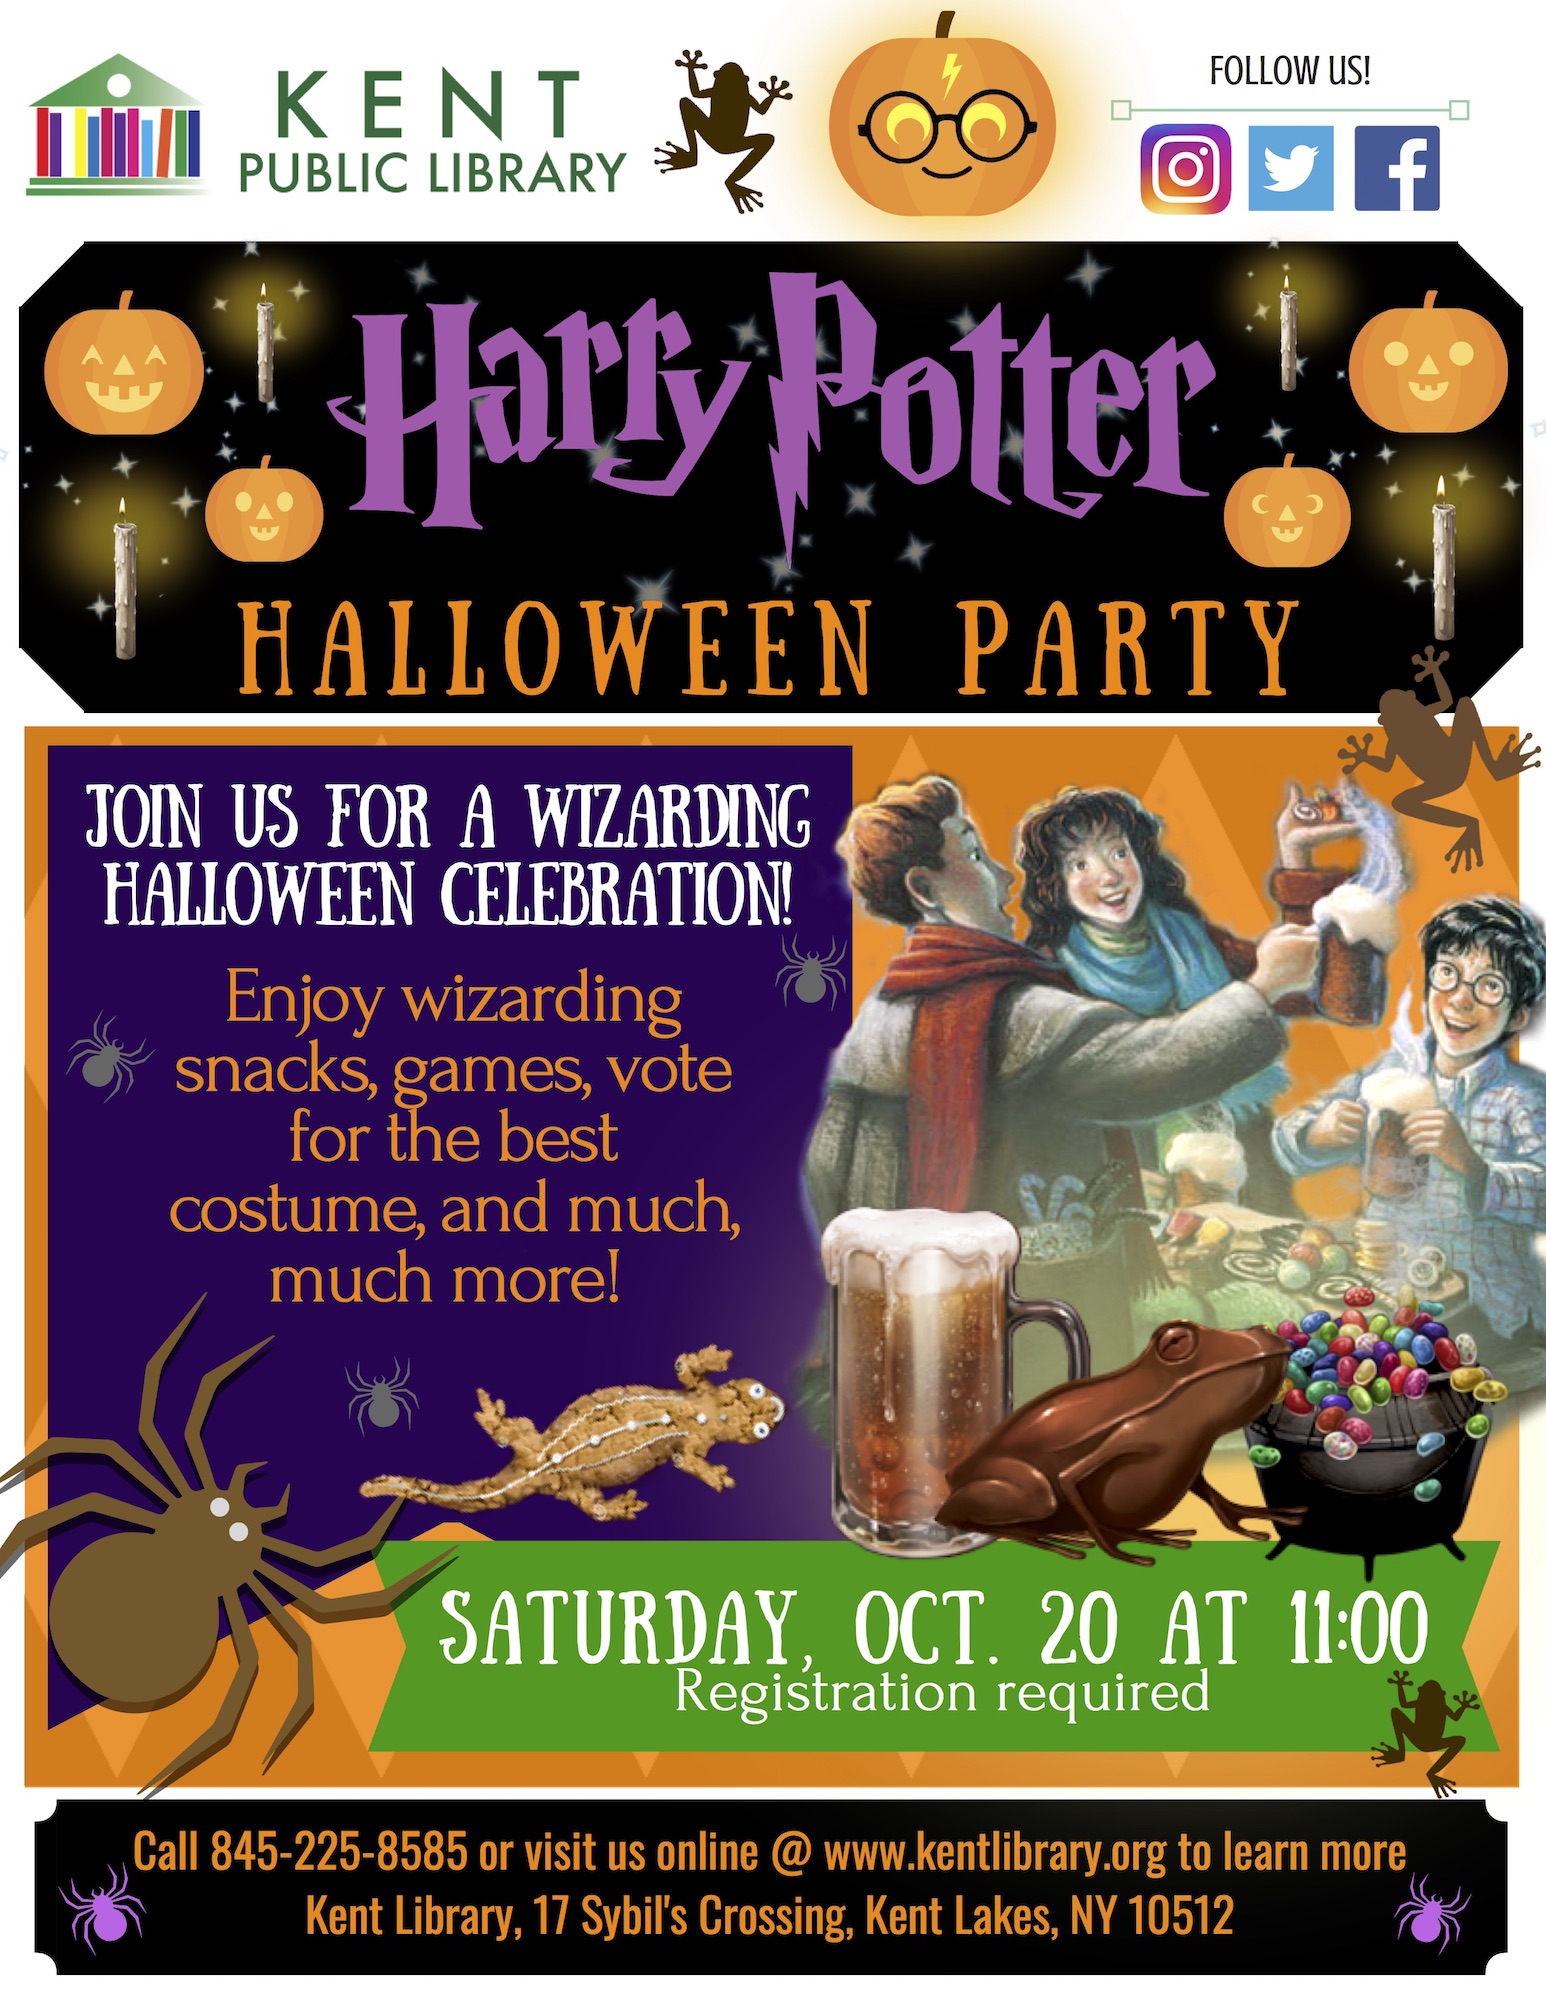 harry potter halloween party at the kent library